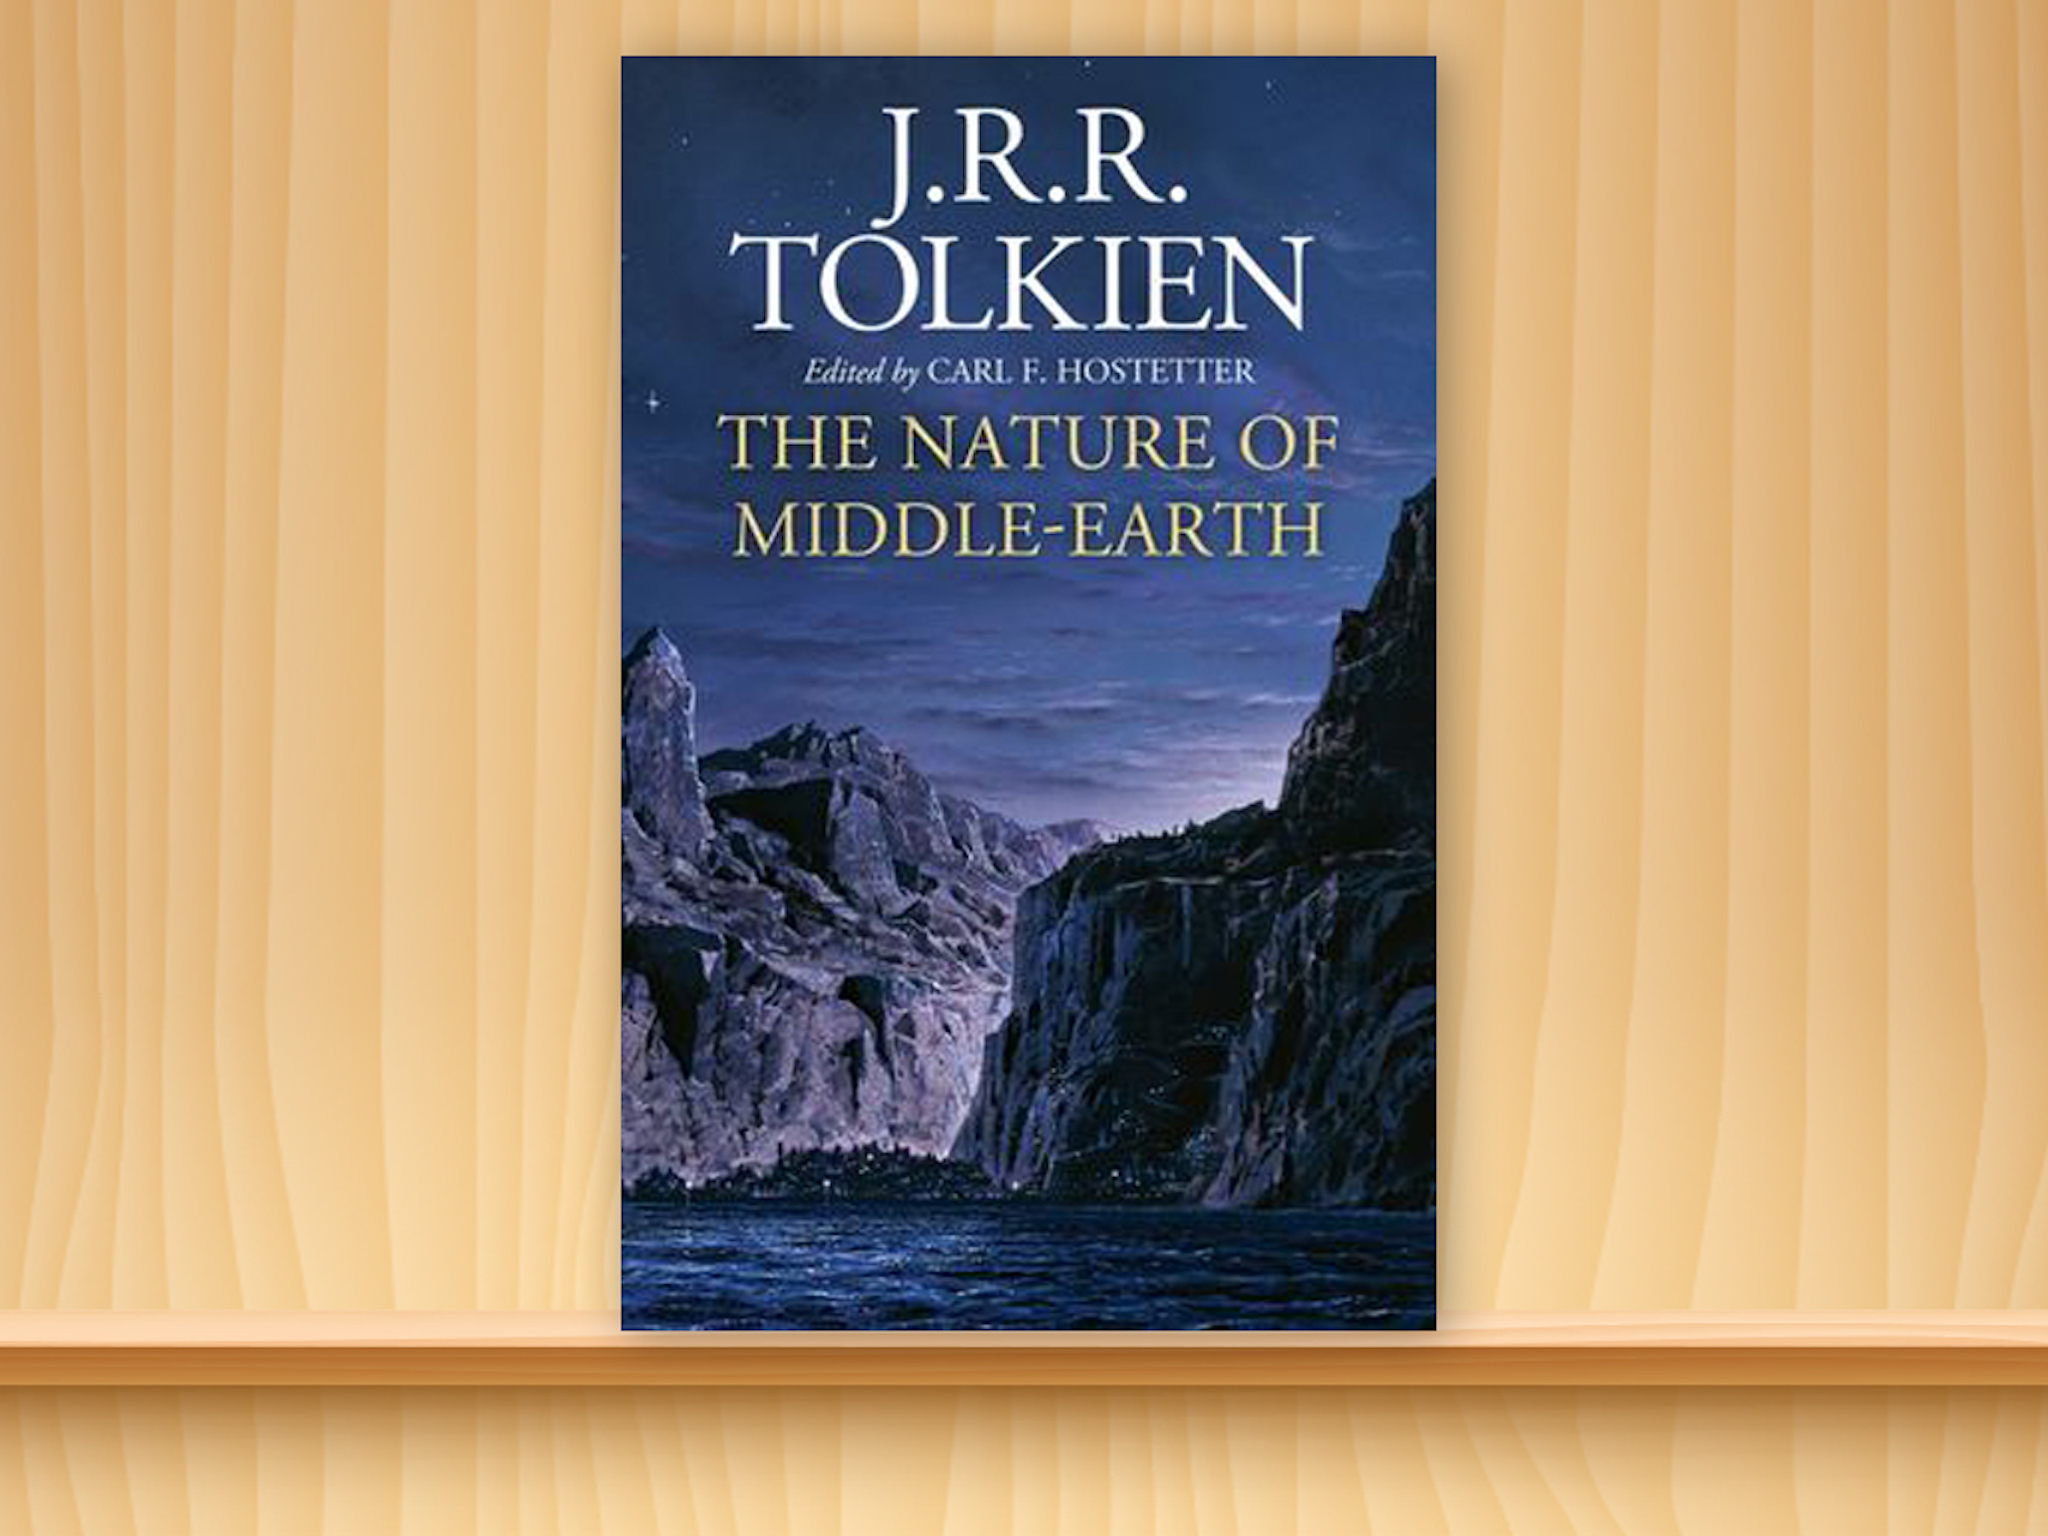 The nature of middle earth, J.R.R. Tolkien